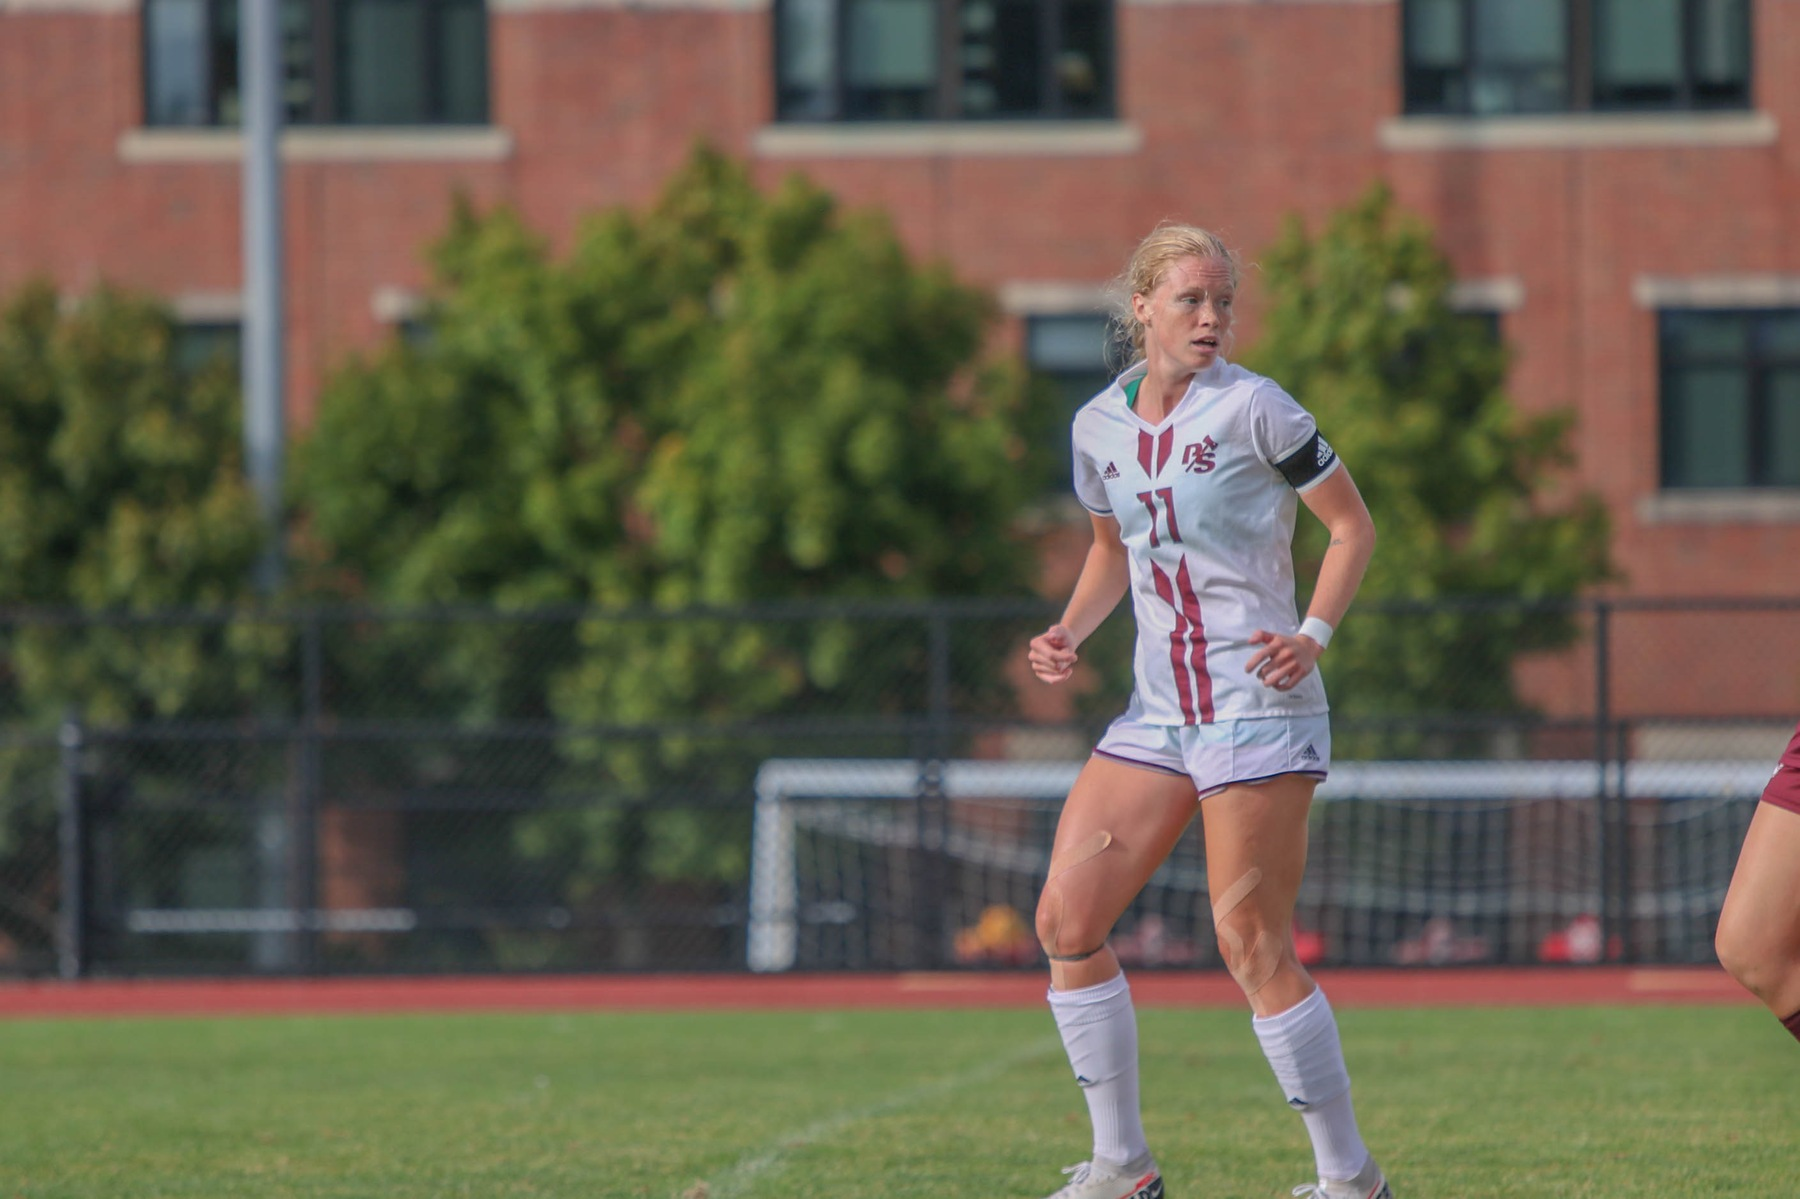 Berg scores twice to lift Loggers over Bruins